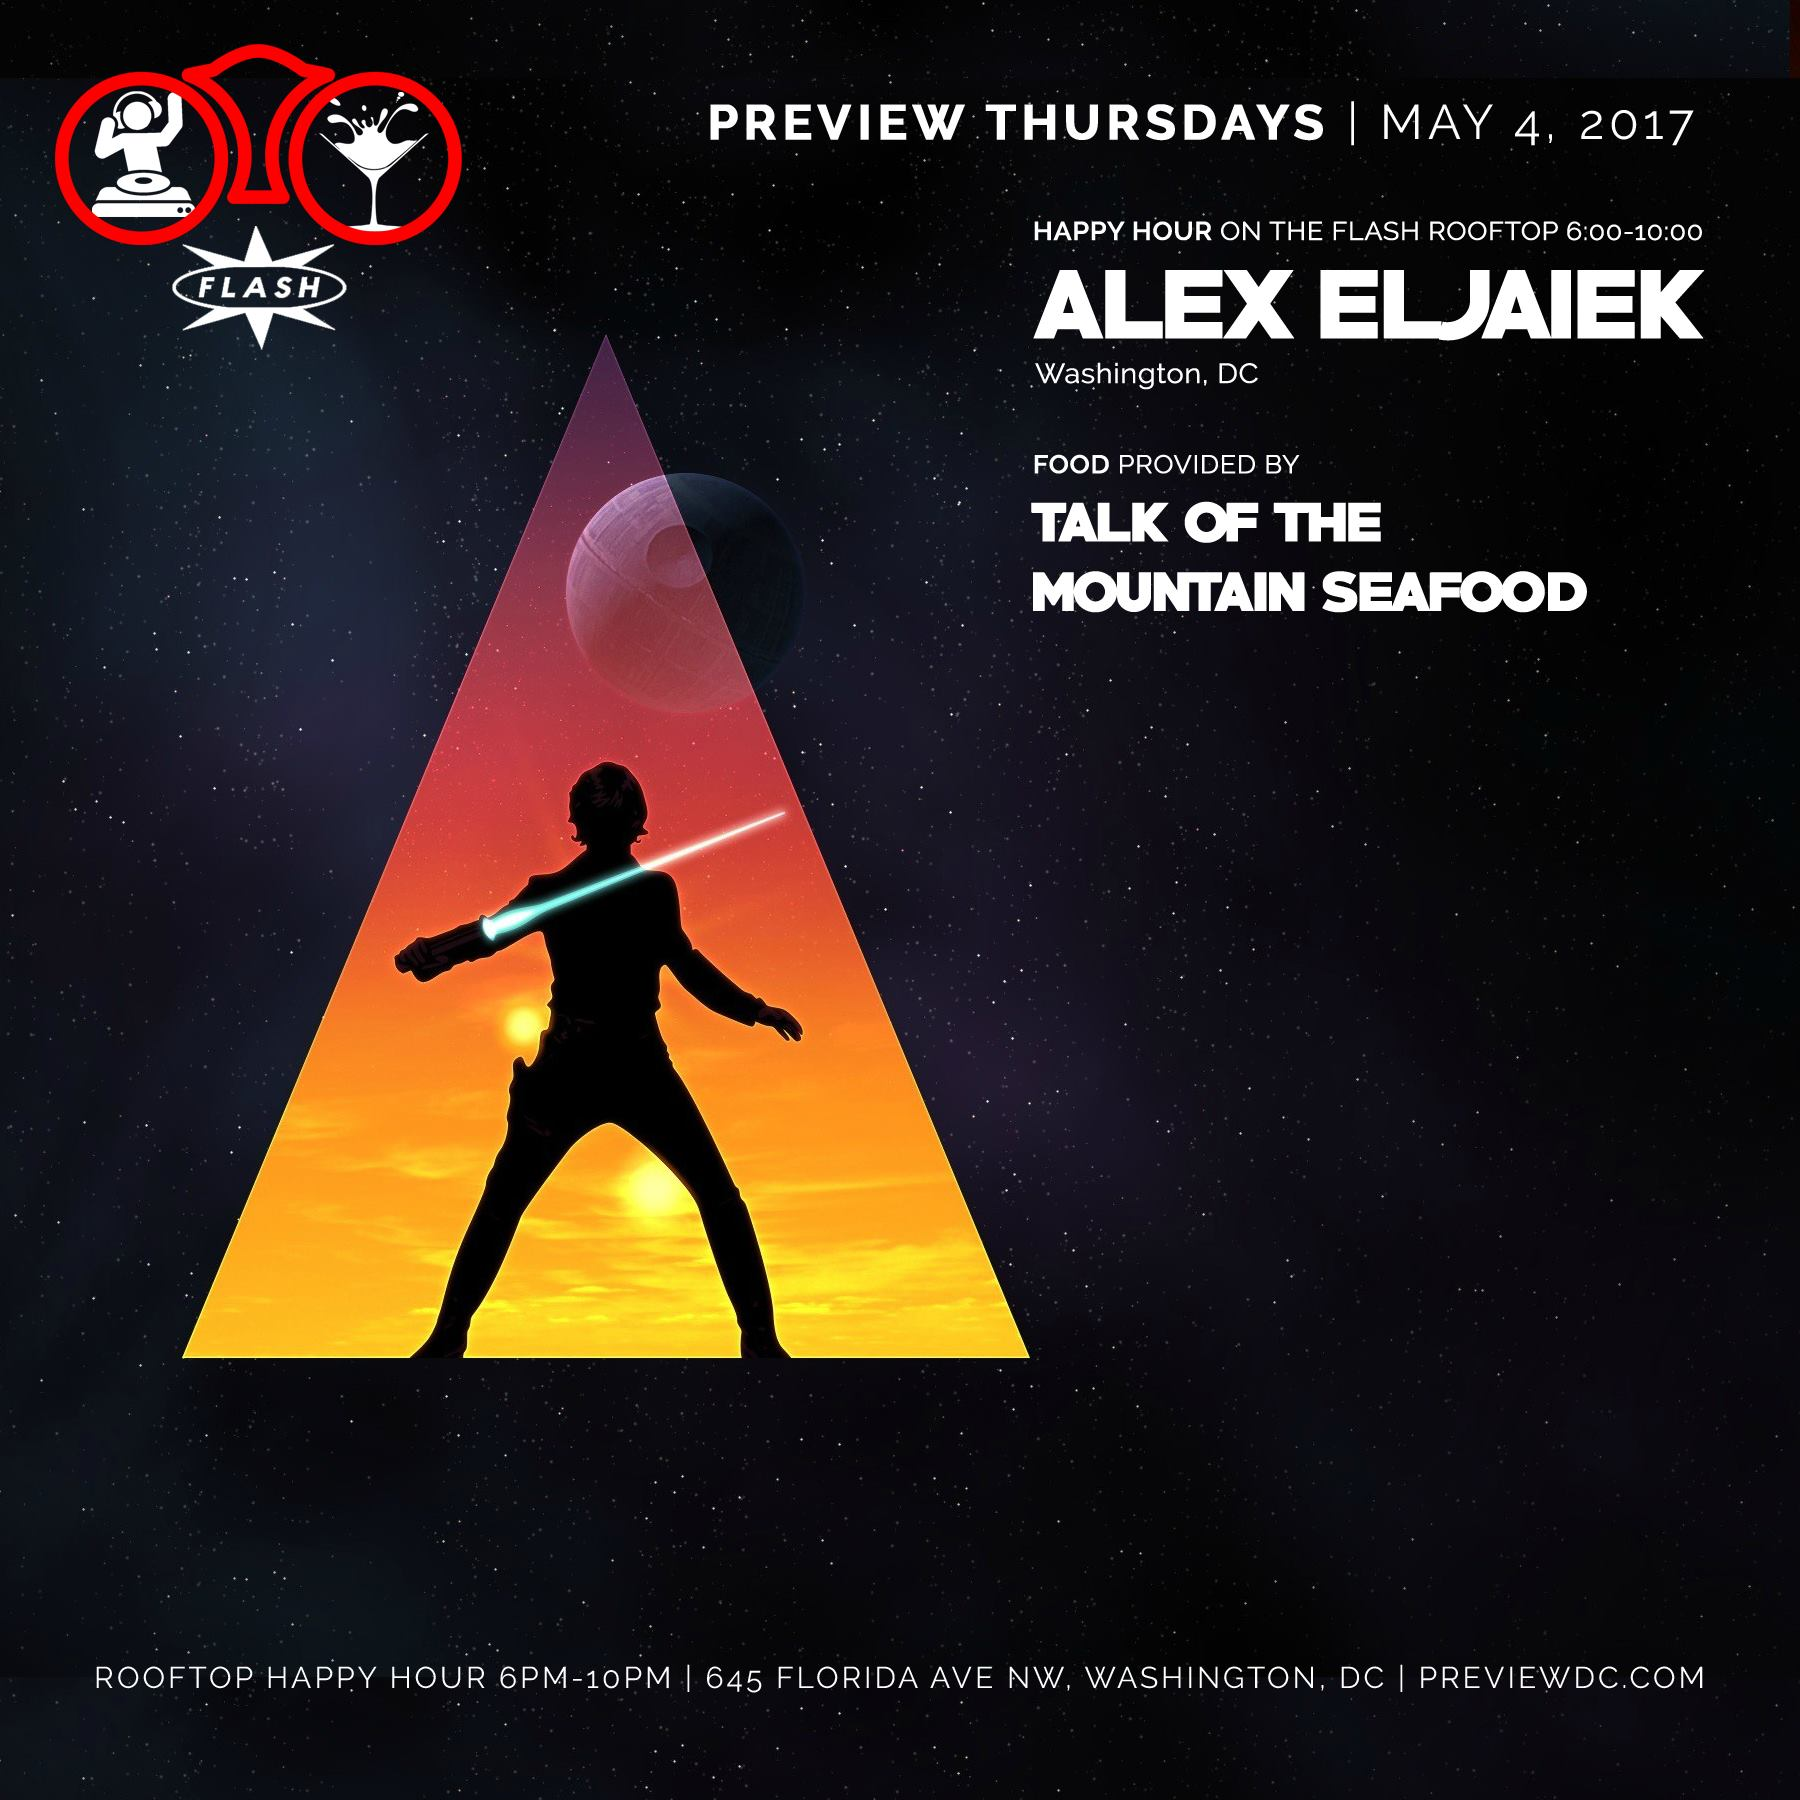 Preview feat. Alex Eljaiek event thumbnail